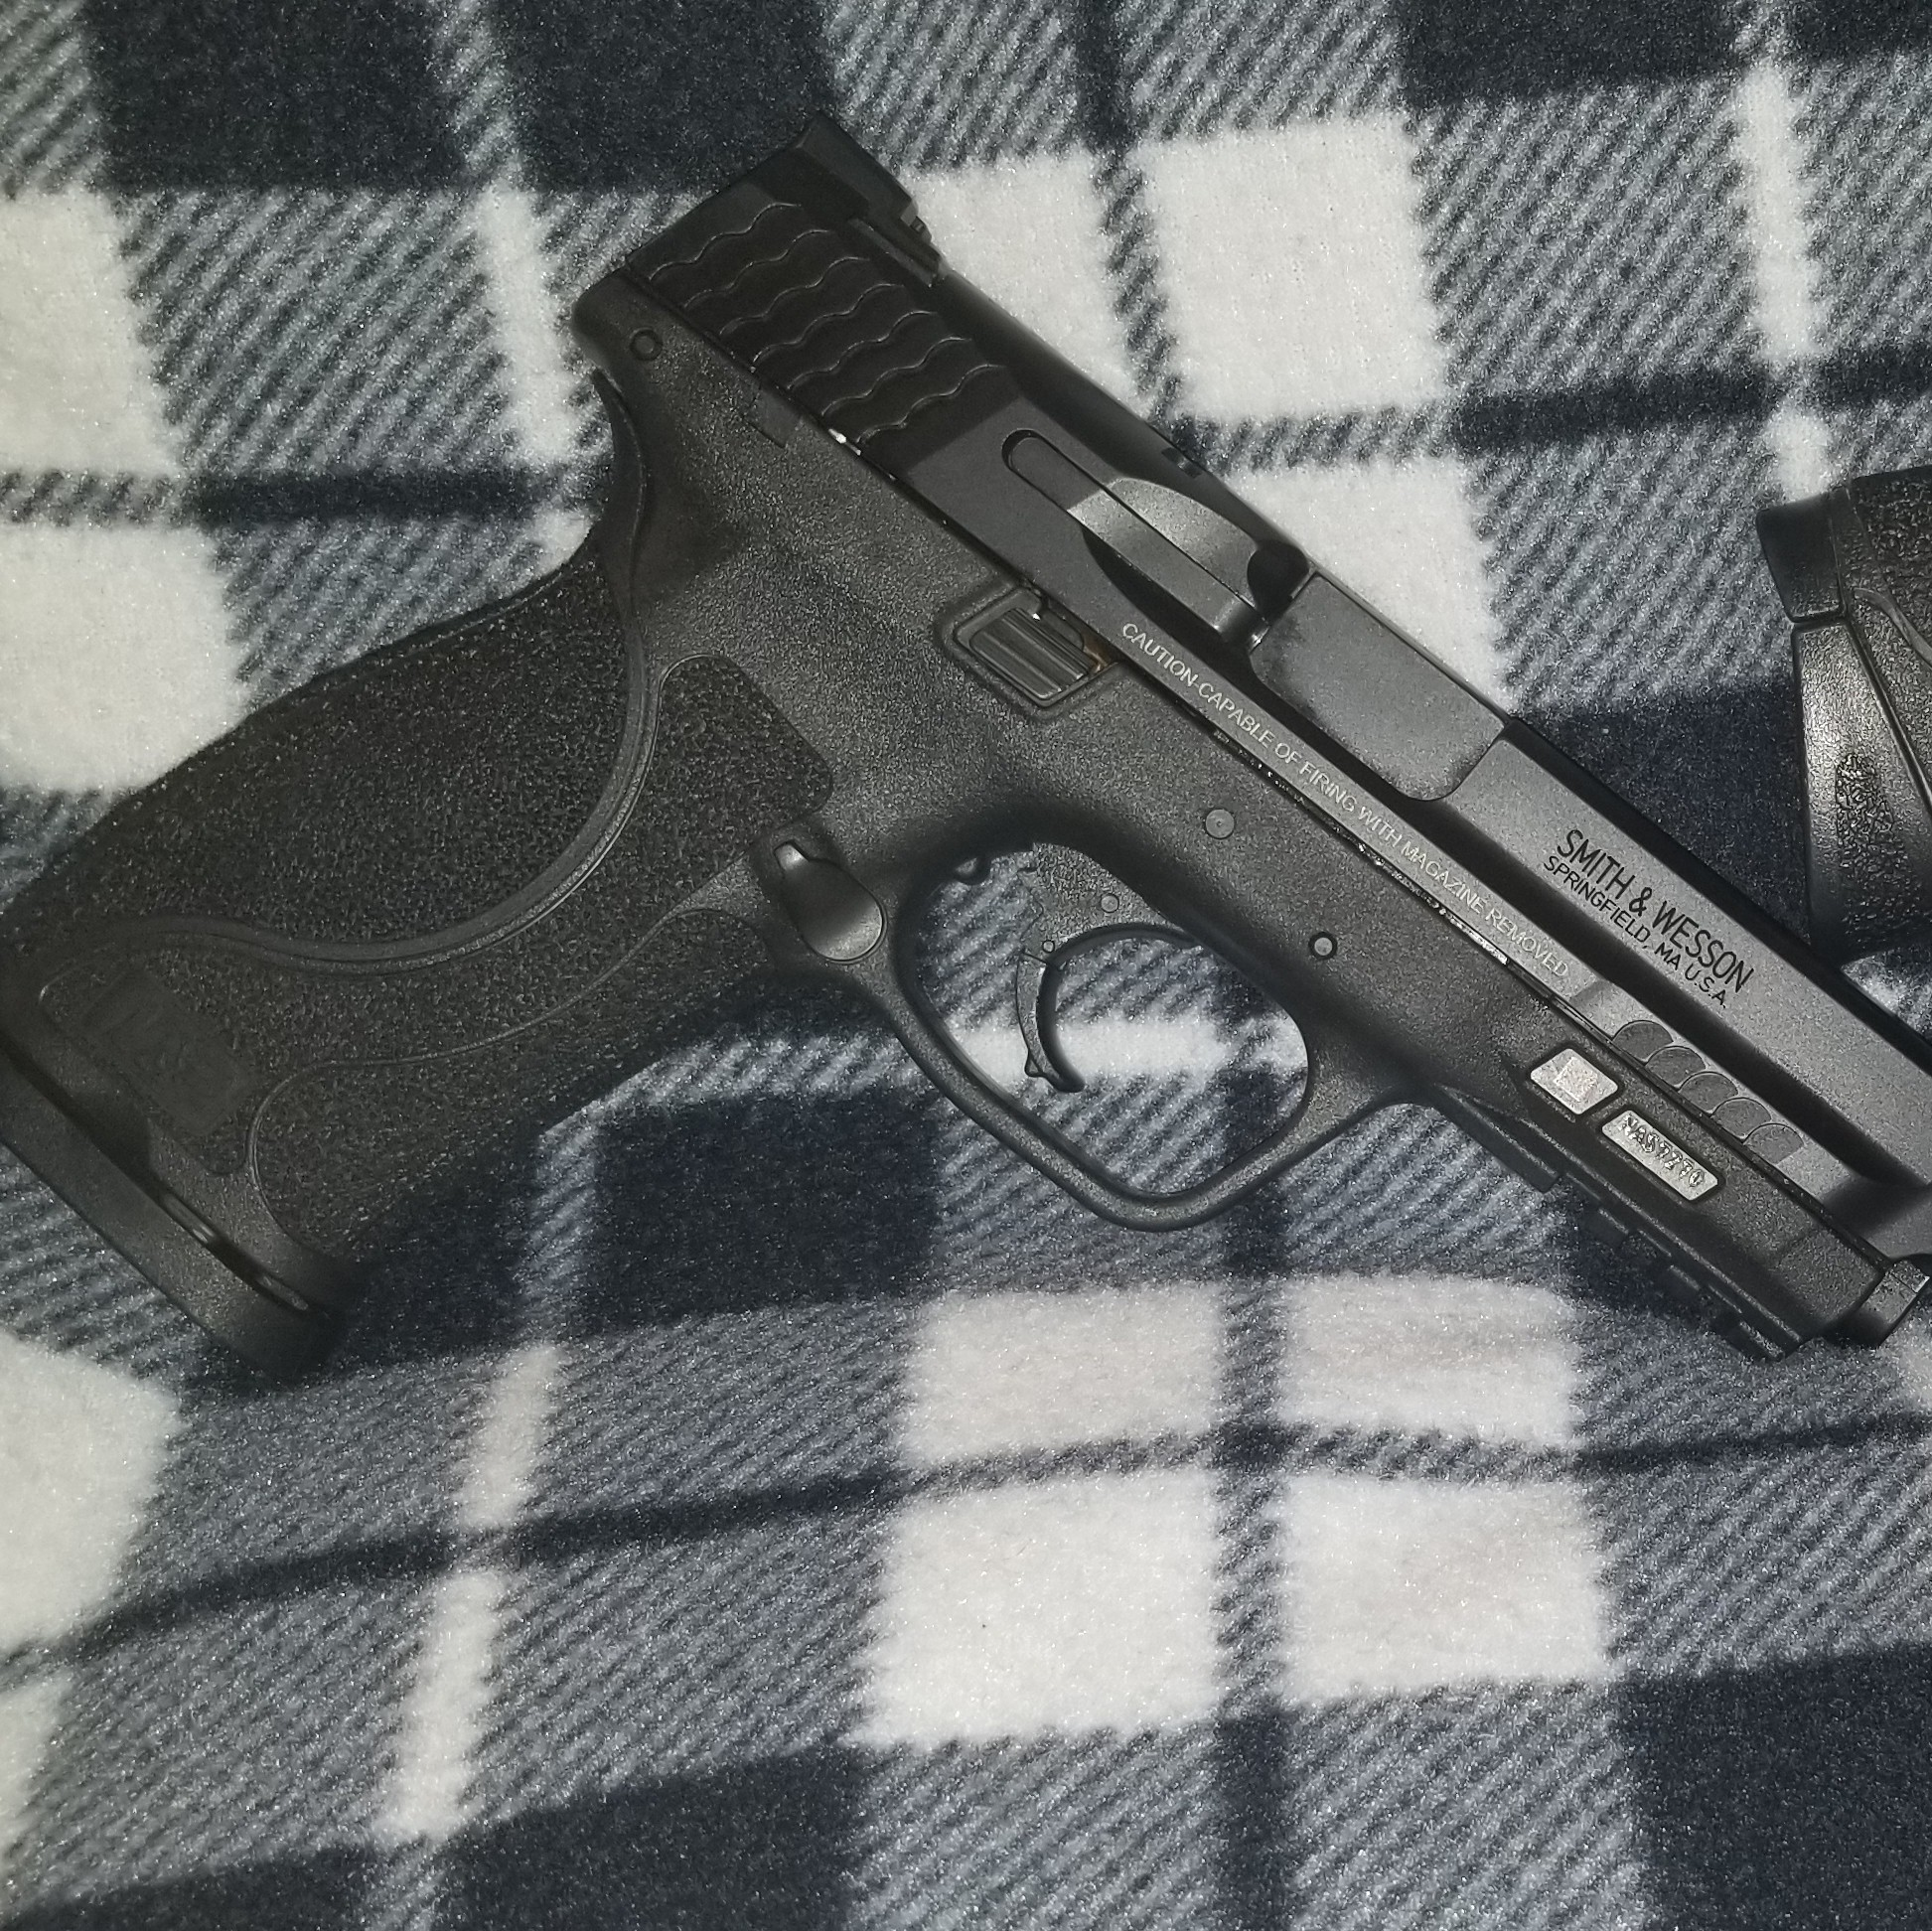 Smith and Wesson M&P 9mm M2.0